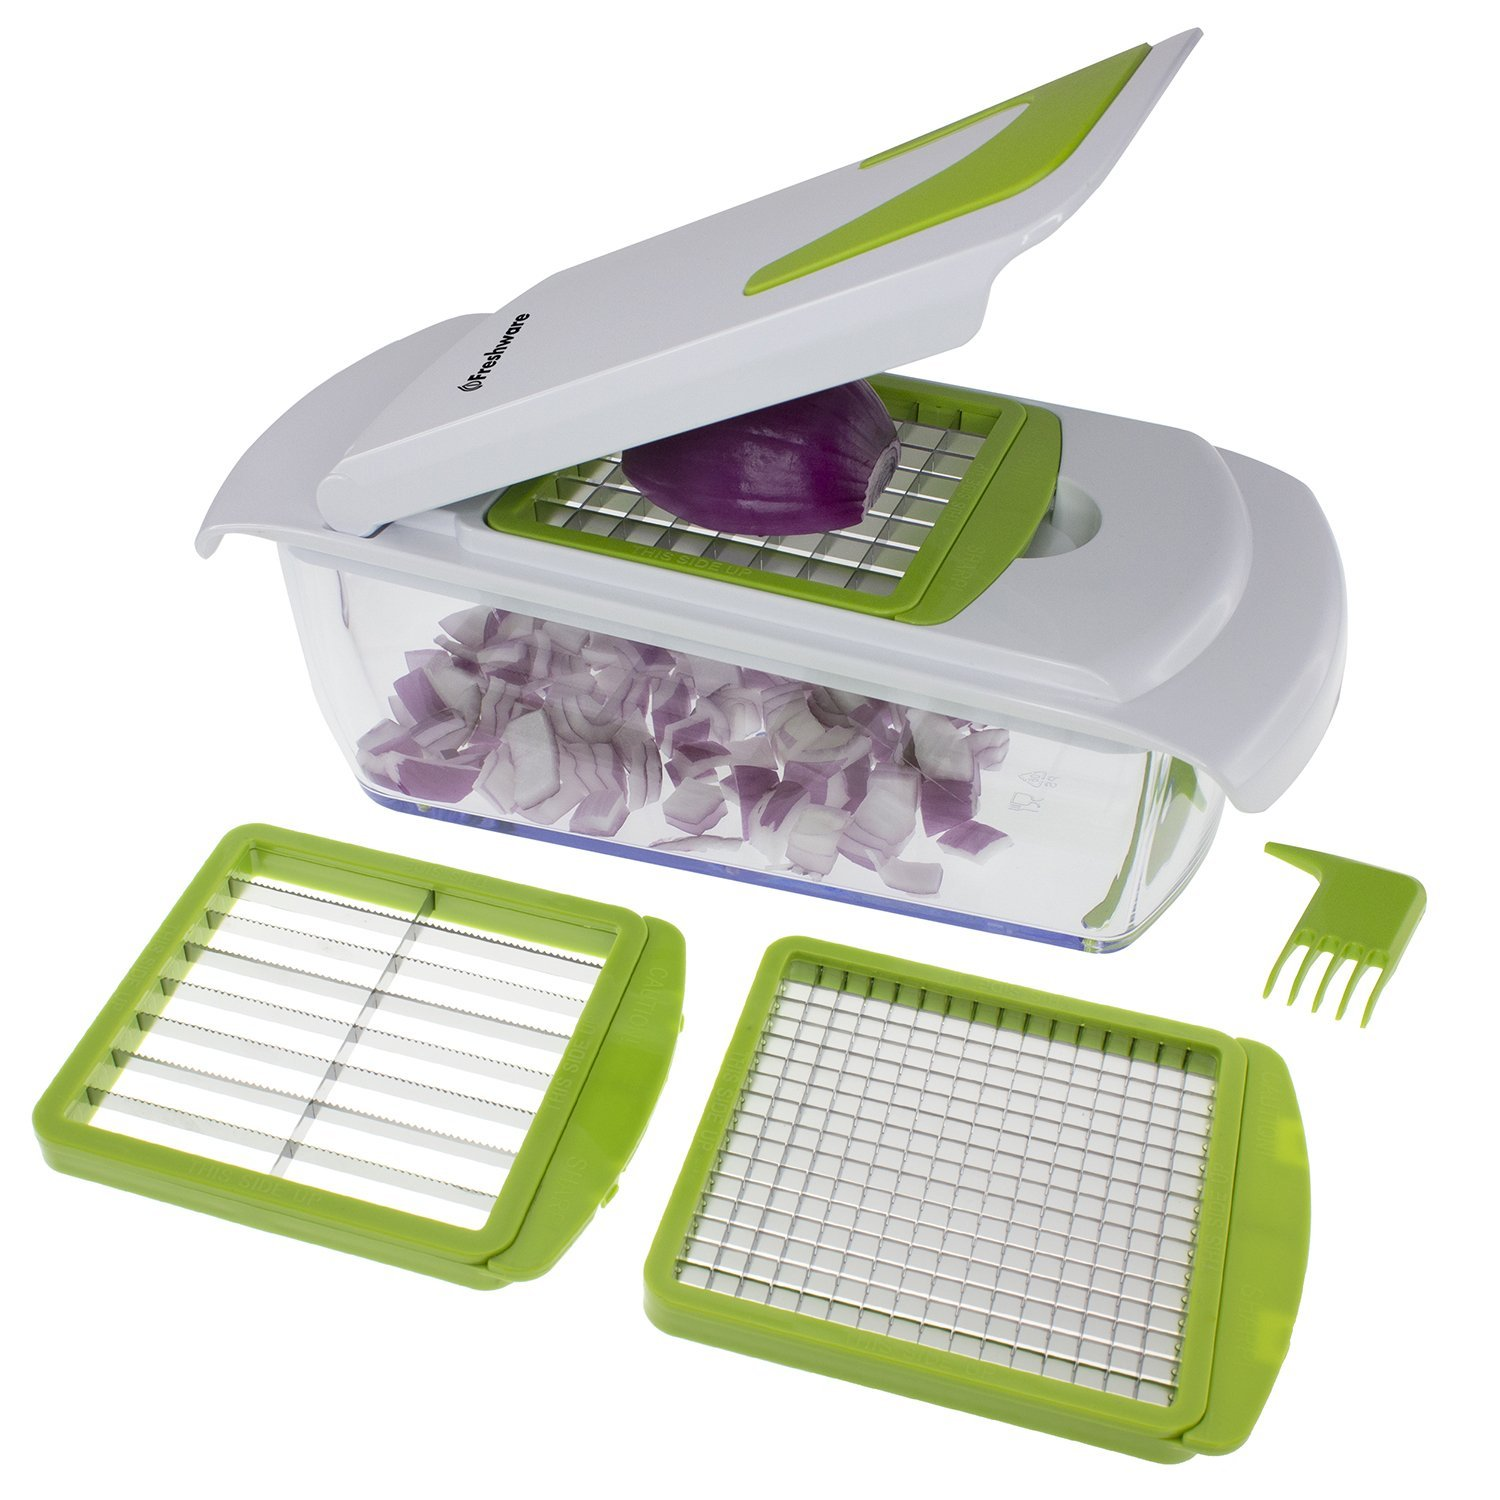 Kt 405 4 In 1 Onion Chopper Vegetable Slicer Fruit And Cheese